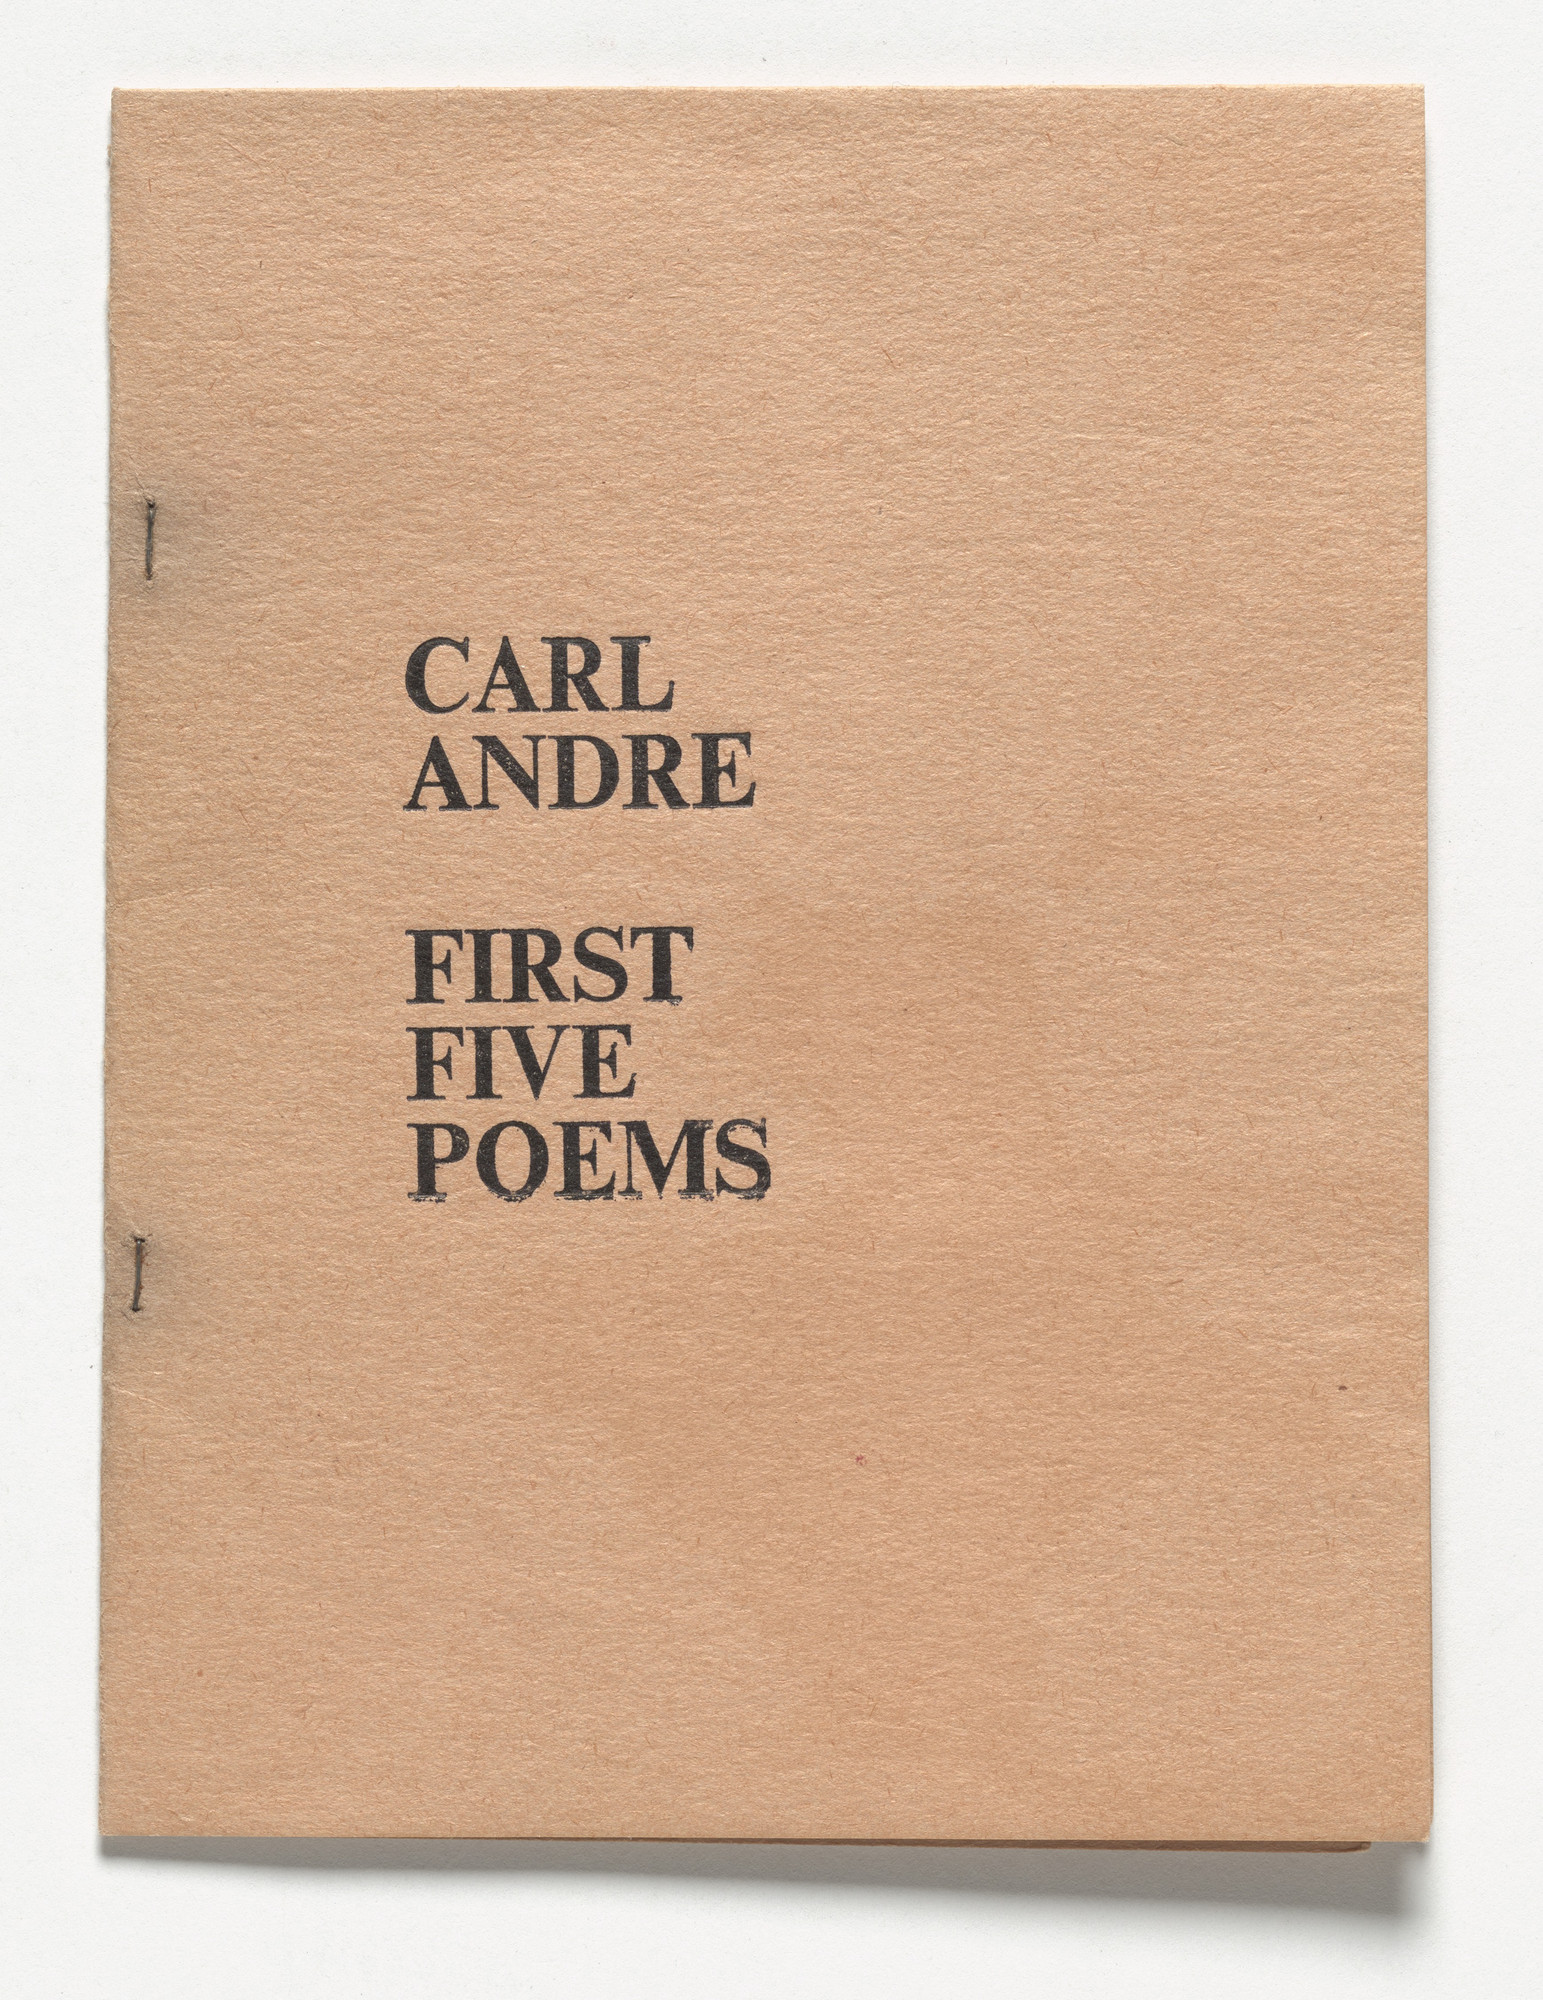 Carl Andre. First Five Poems. c. 1959